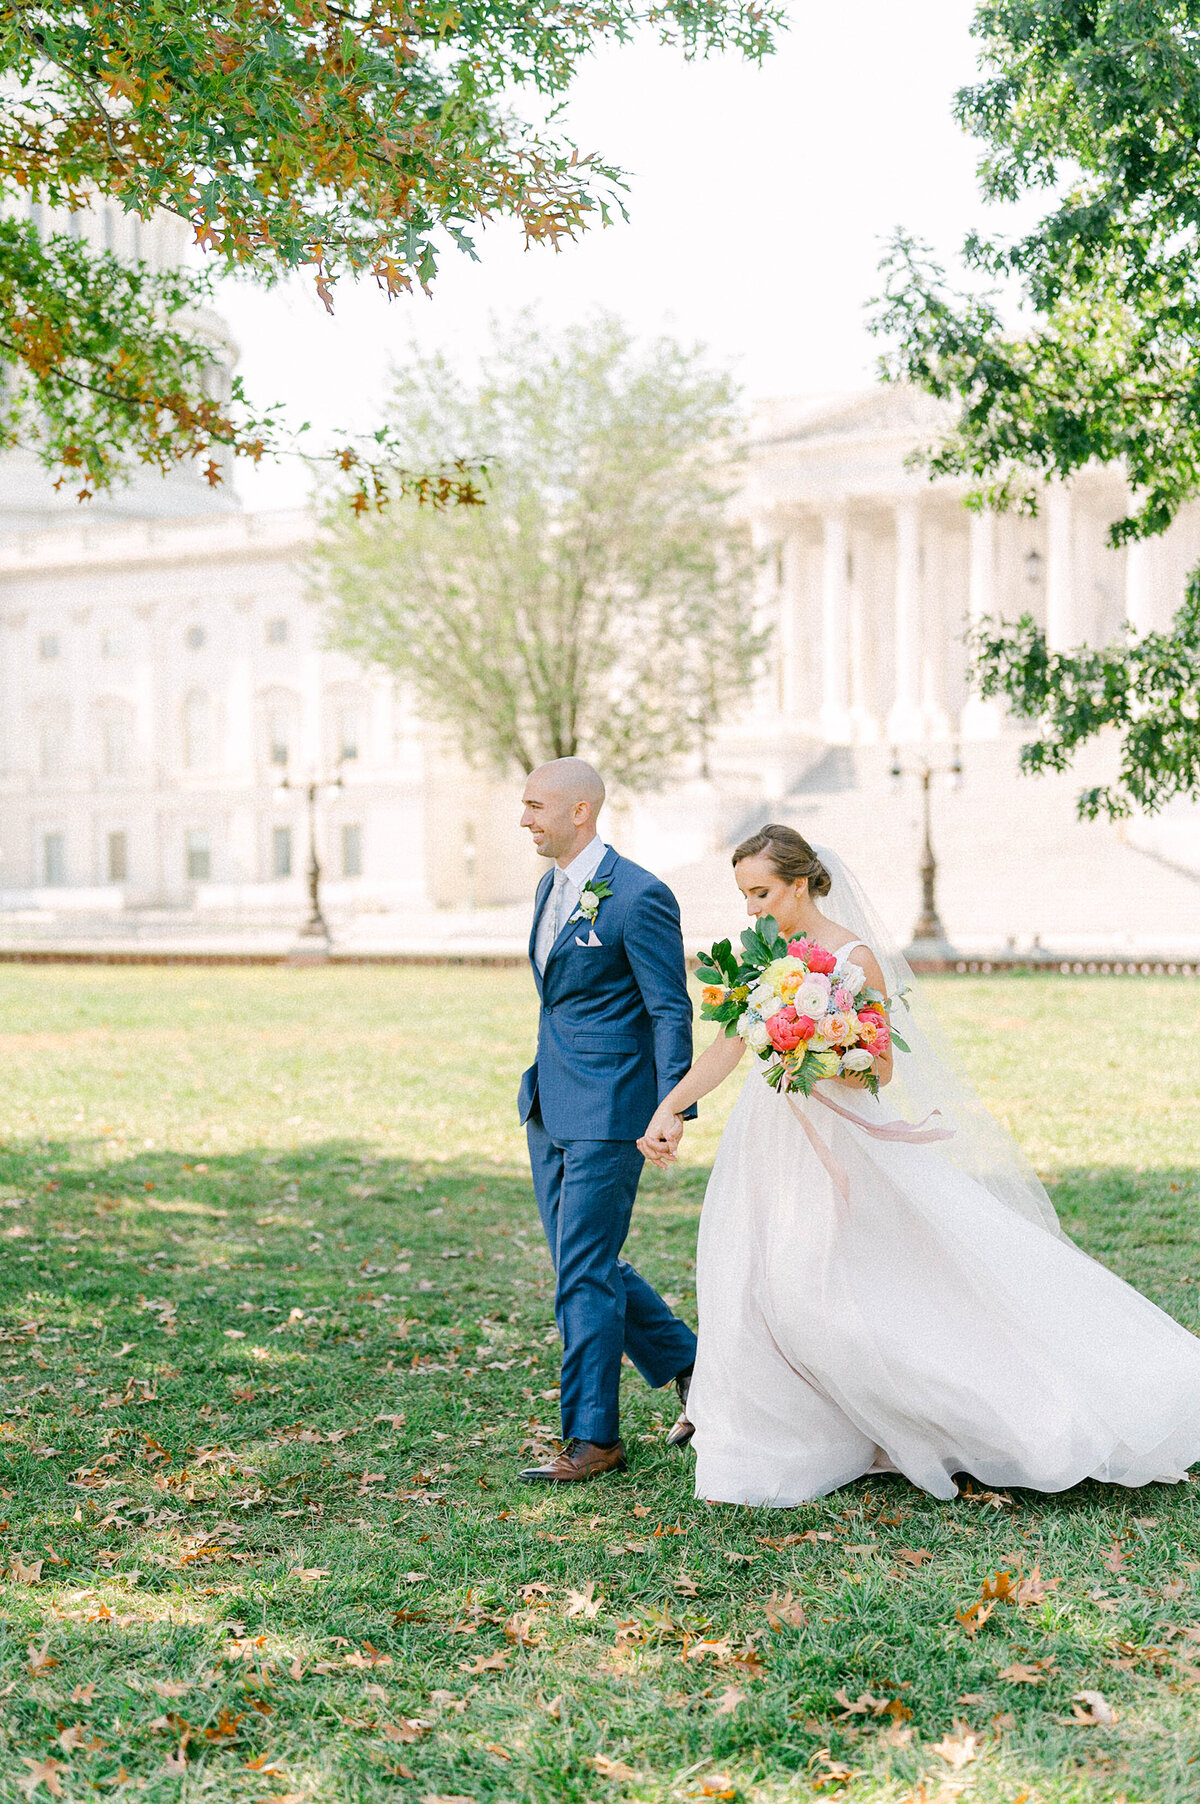 Jennifer Bosak Photography - DC Area Wedding Photography - DC, Virginia, Maryland - Jeanna + Michael - Decatur House Wedding - 15